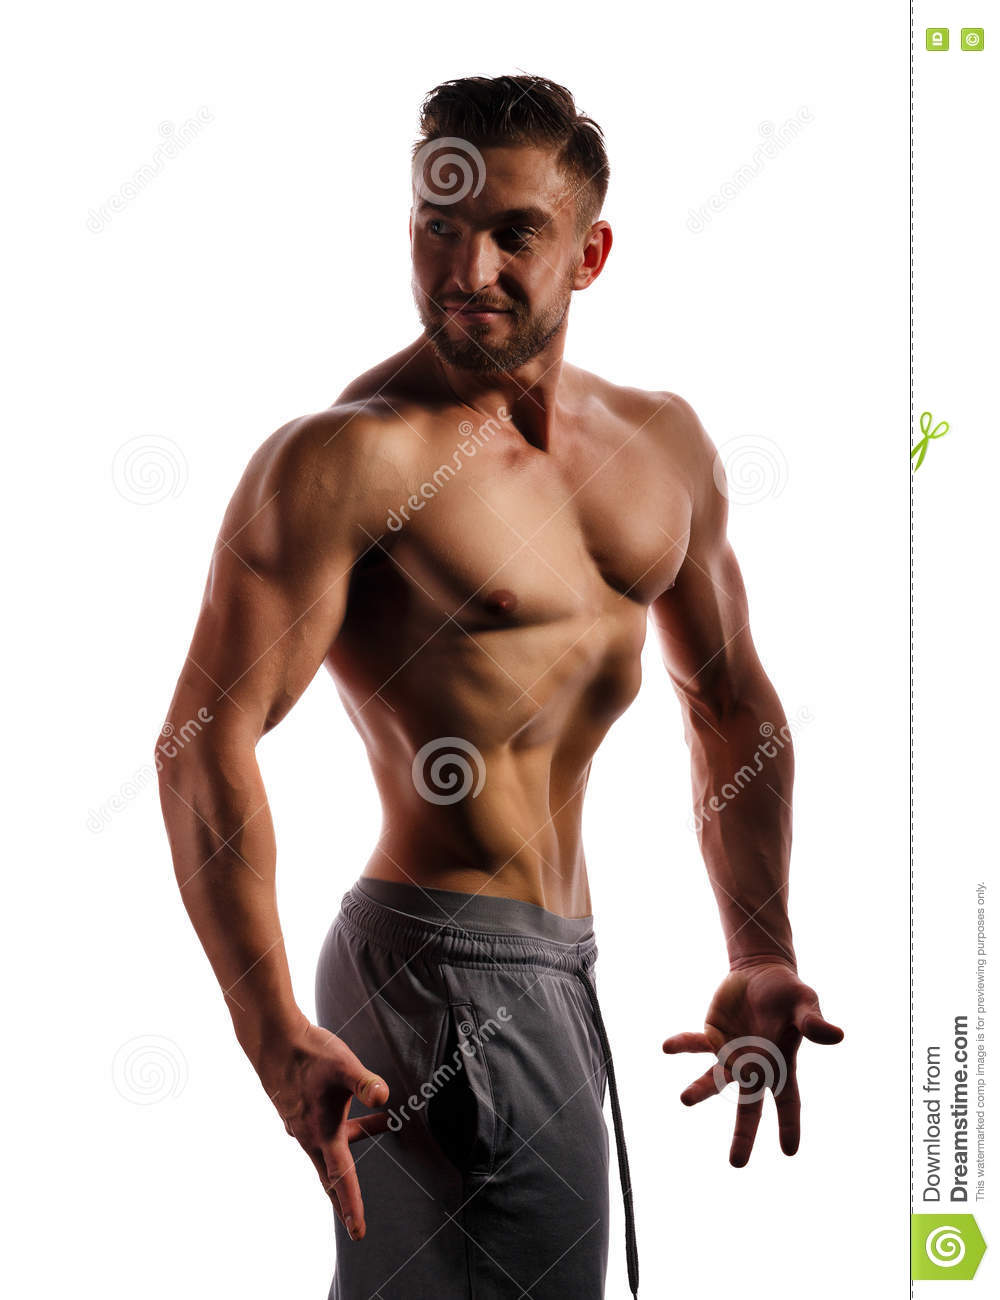 Confirm. Nude male bodybuilding poses think, that